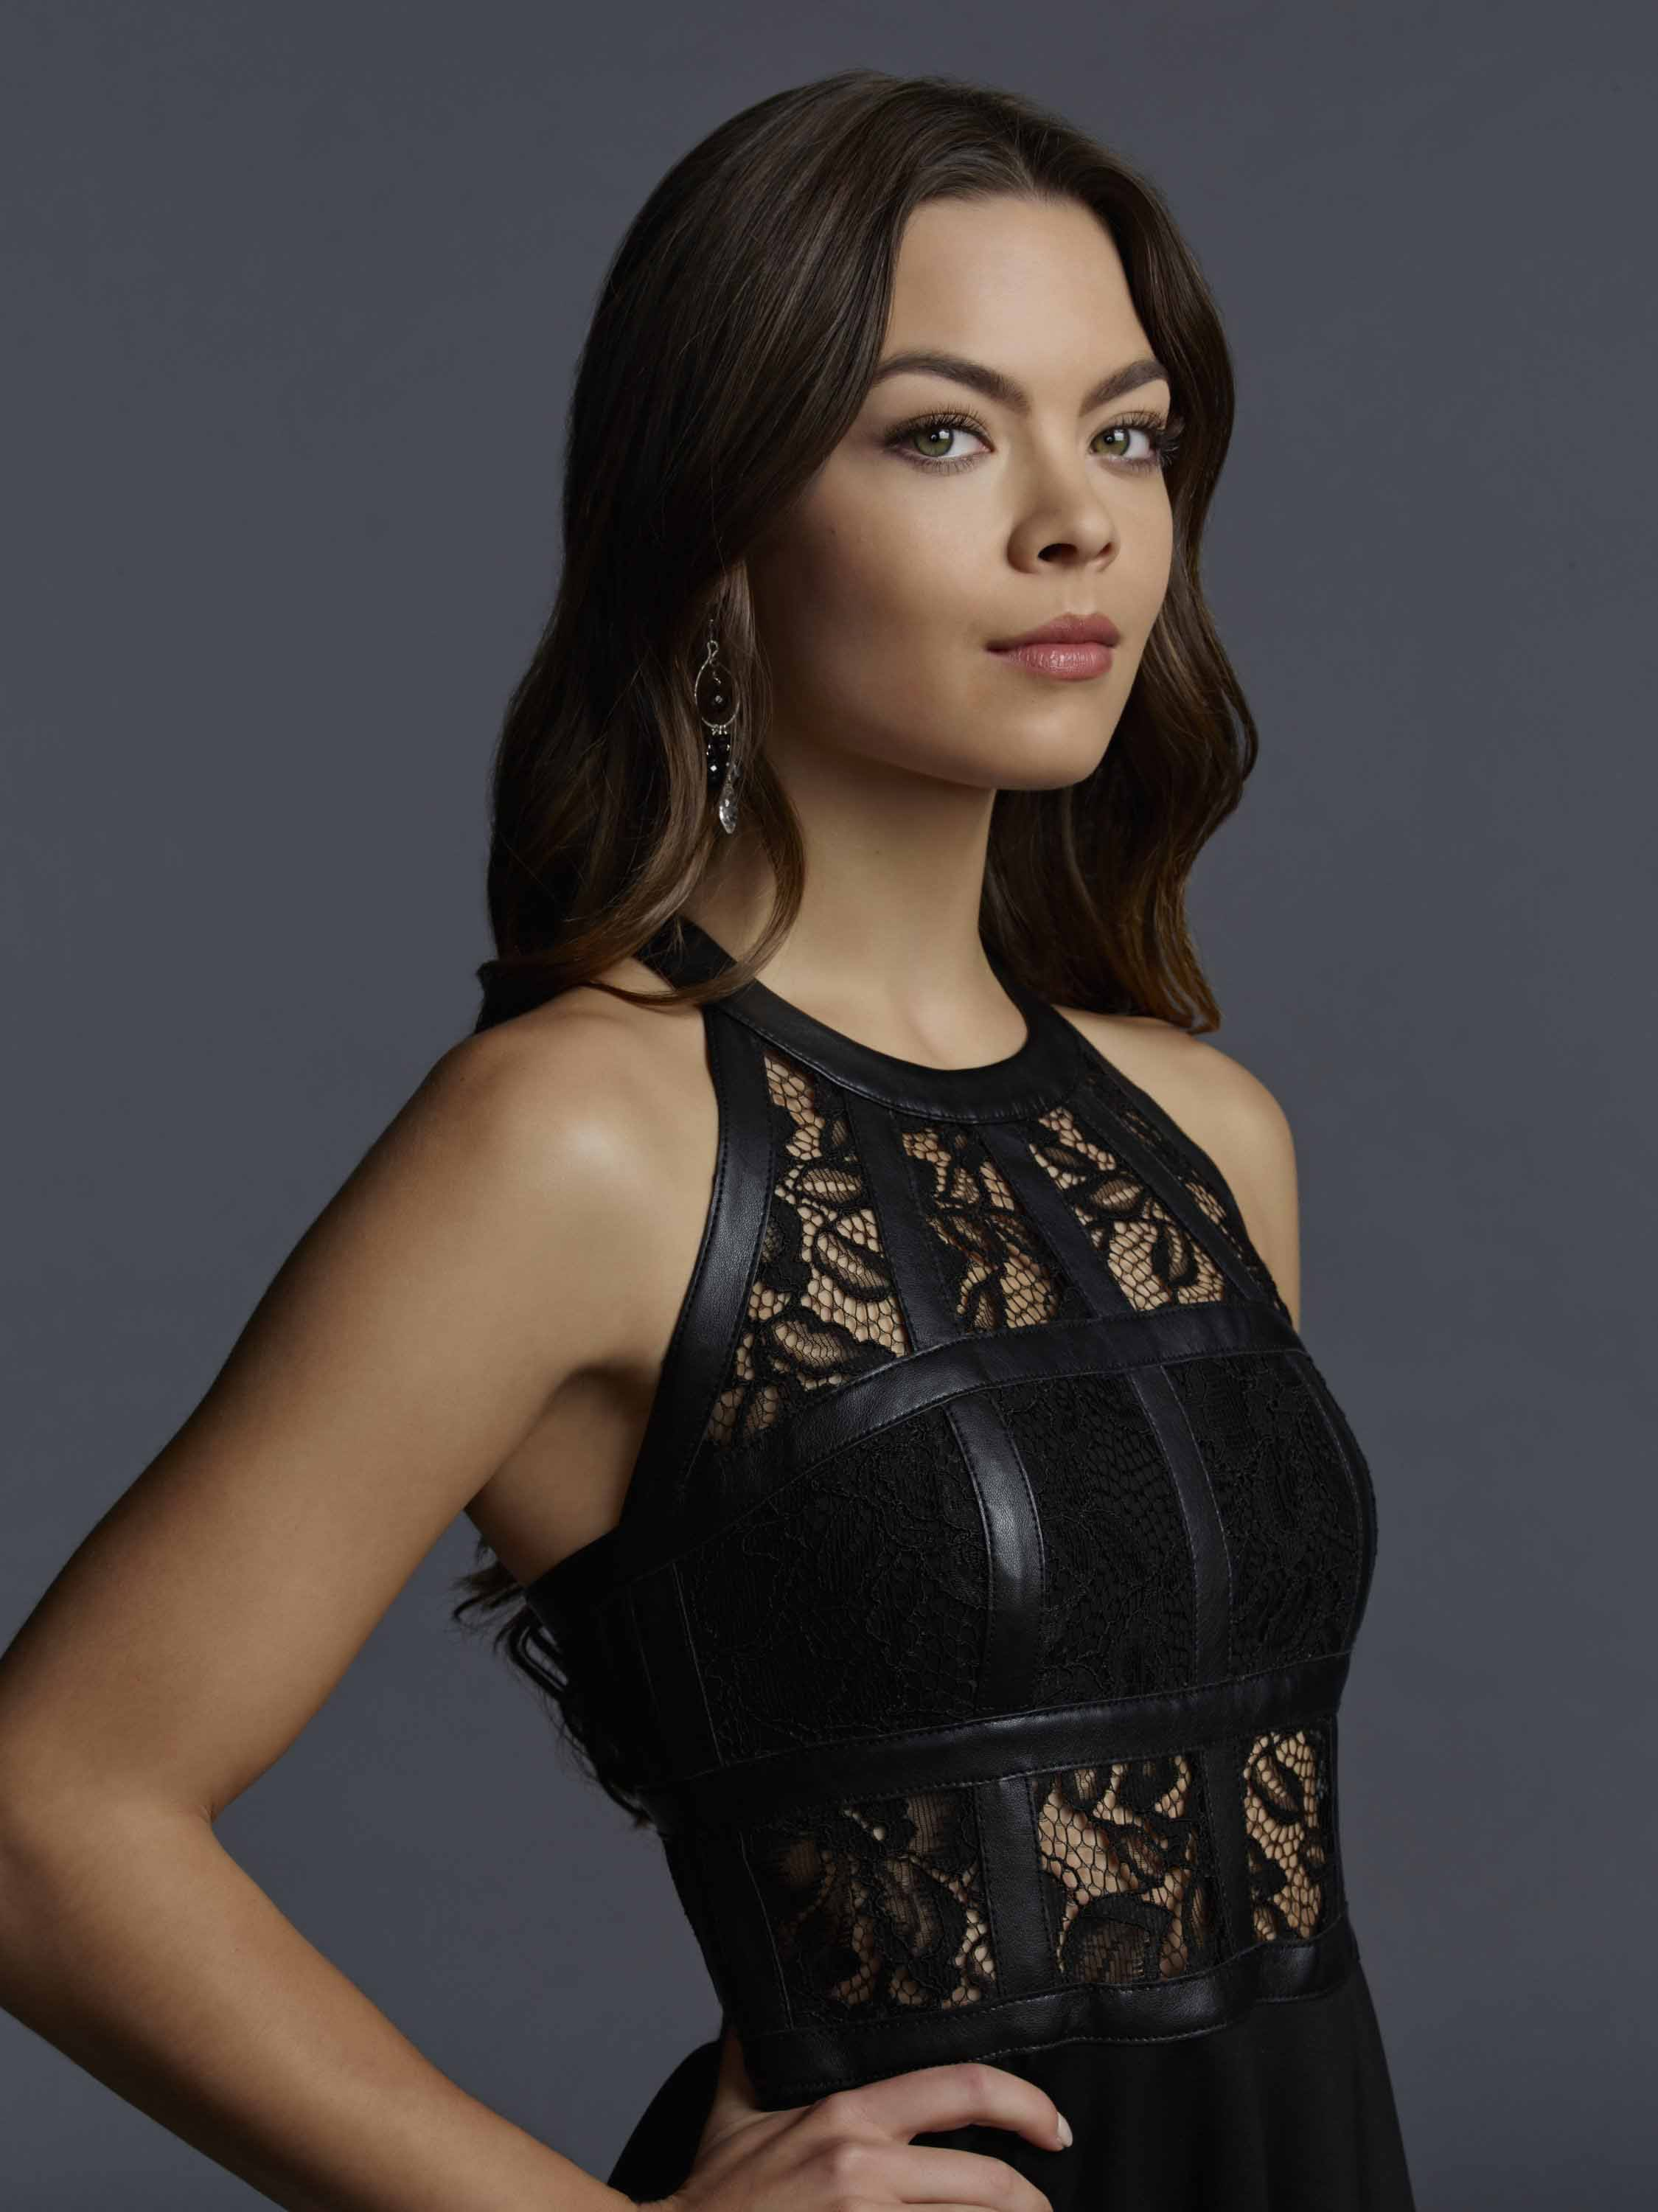 Scarlett byrne wallpapers